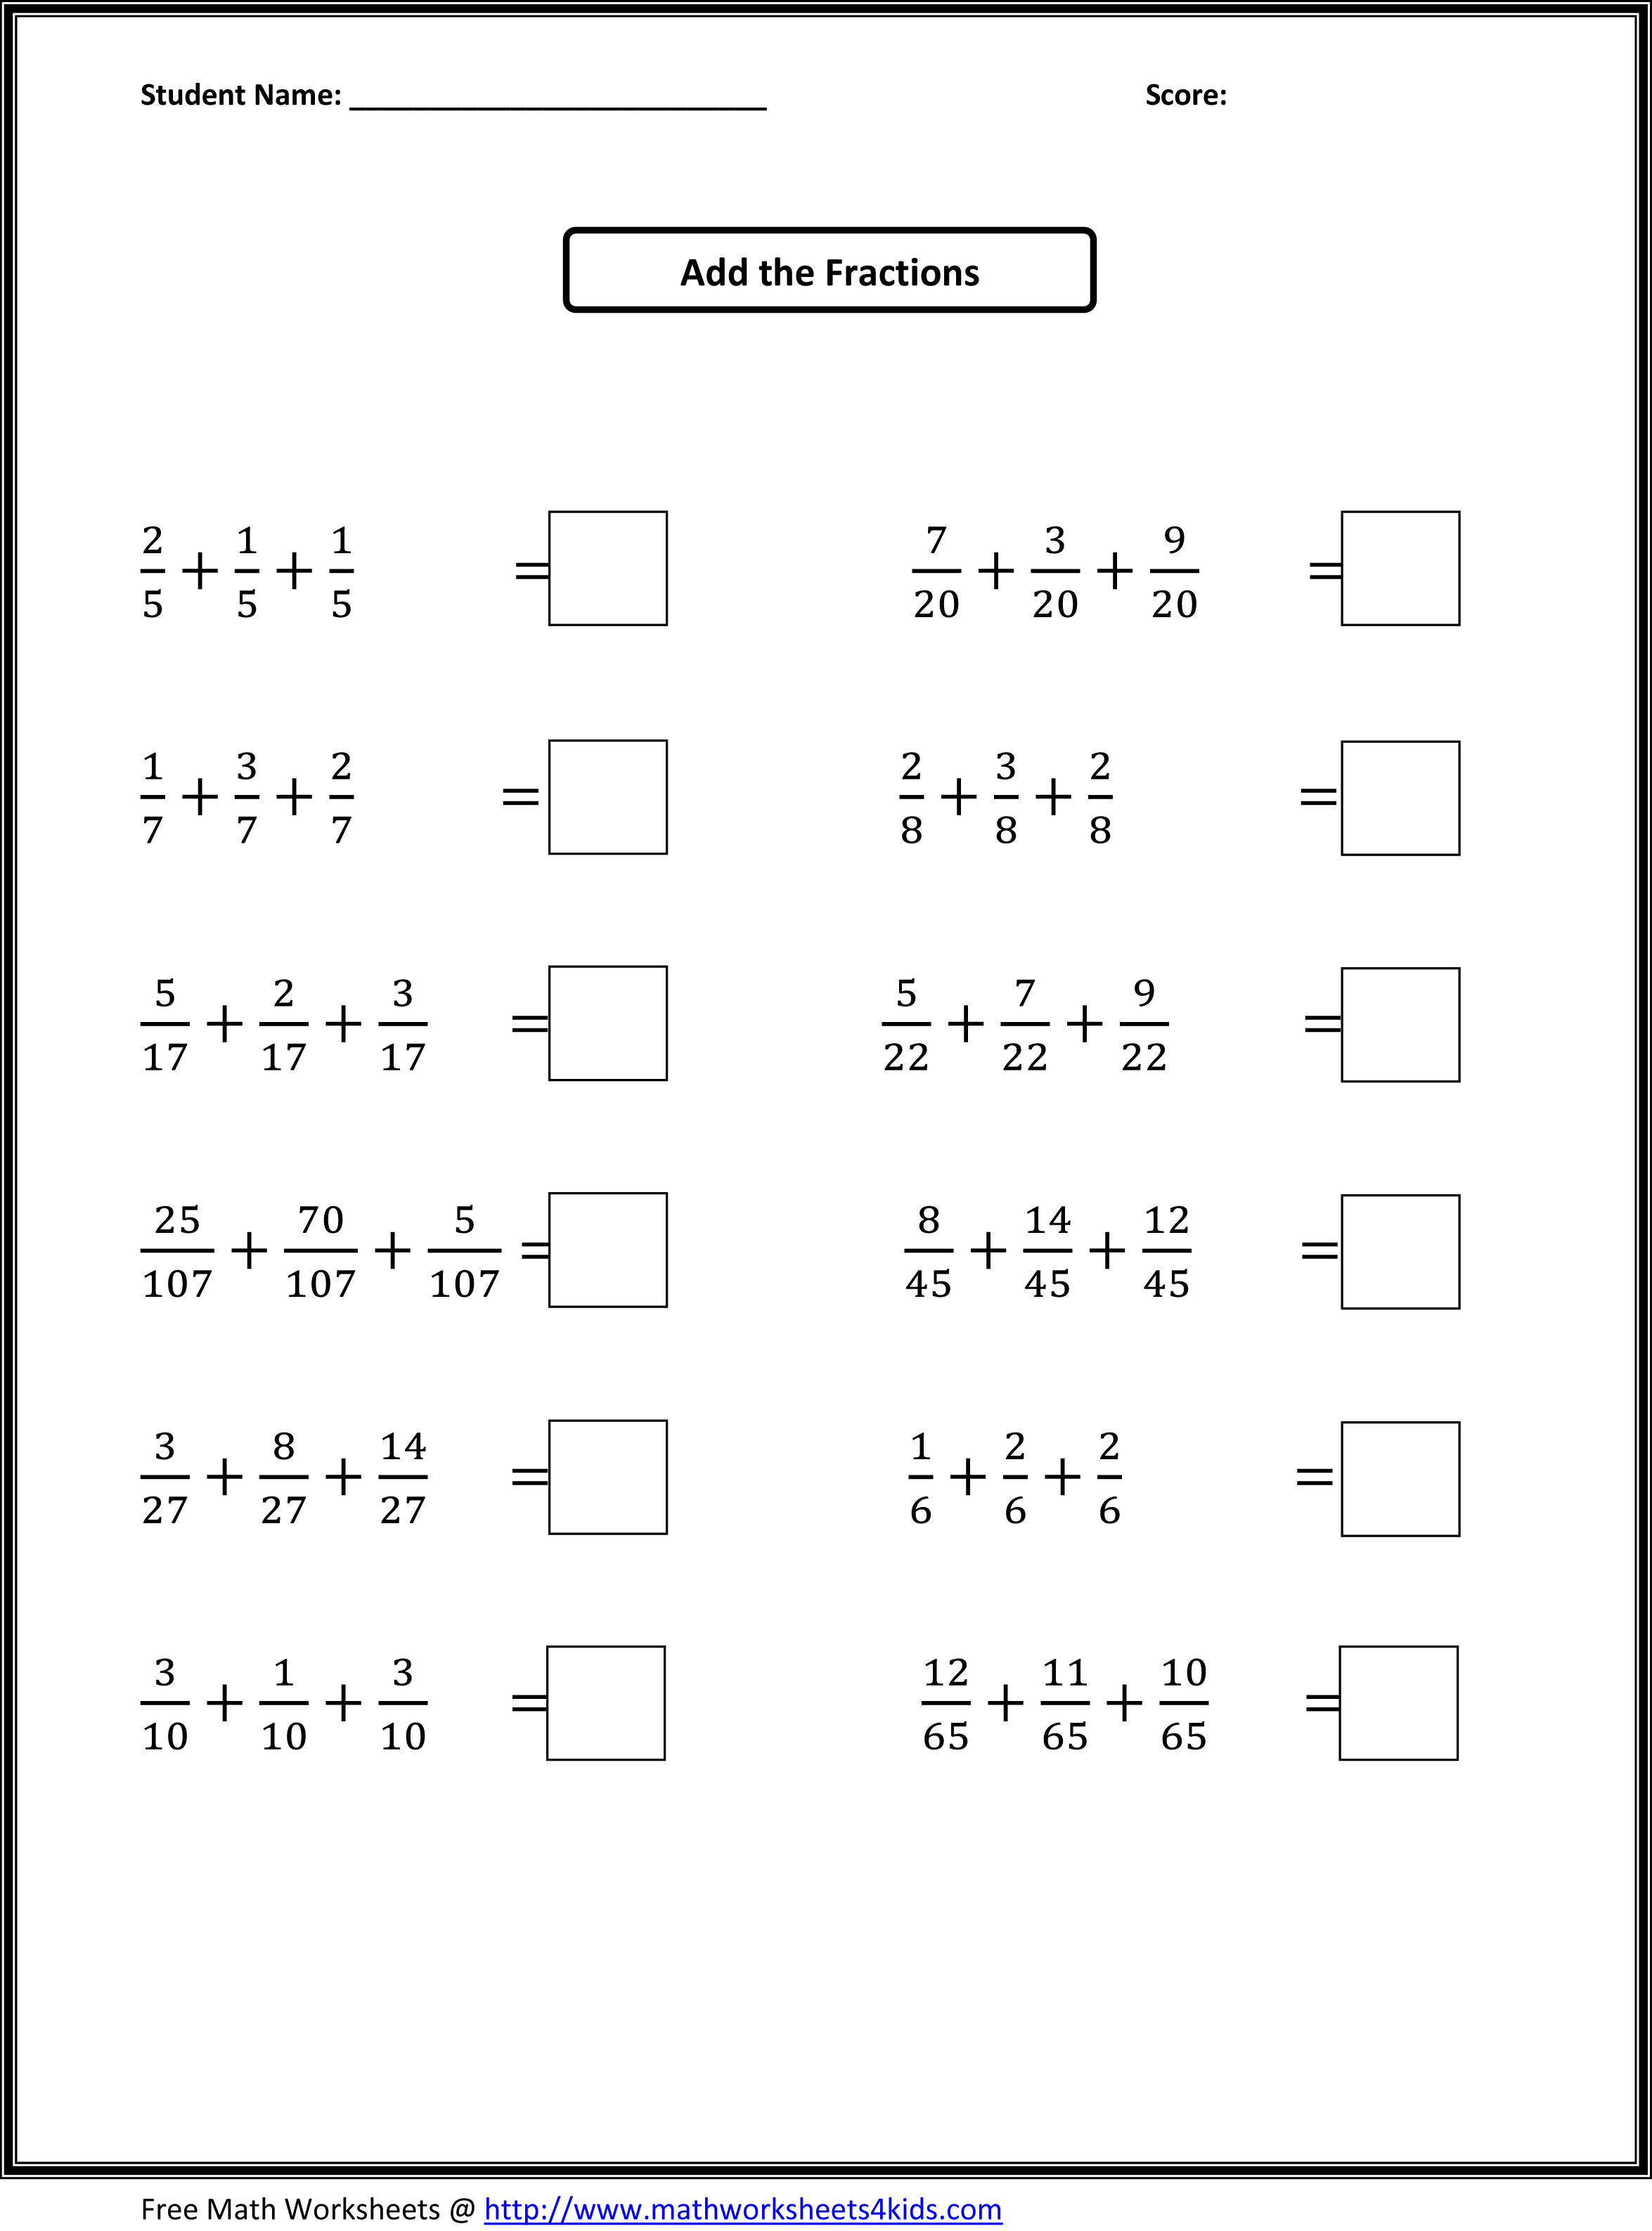 Worksheet Fractions For 4th Grade Worksheets fraction worksheets 4th grade kids activities converting improper fractions mixed numbers writing printable free adding print